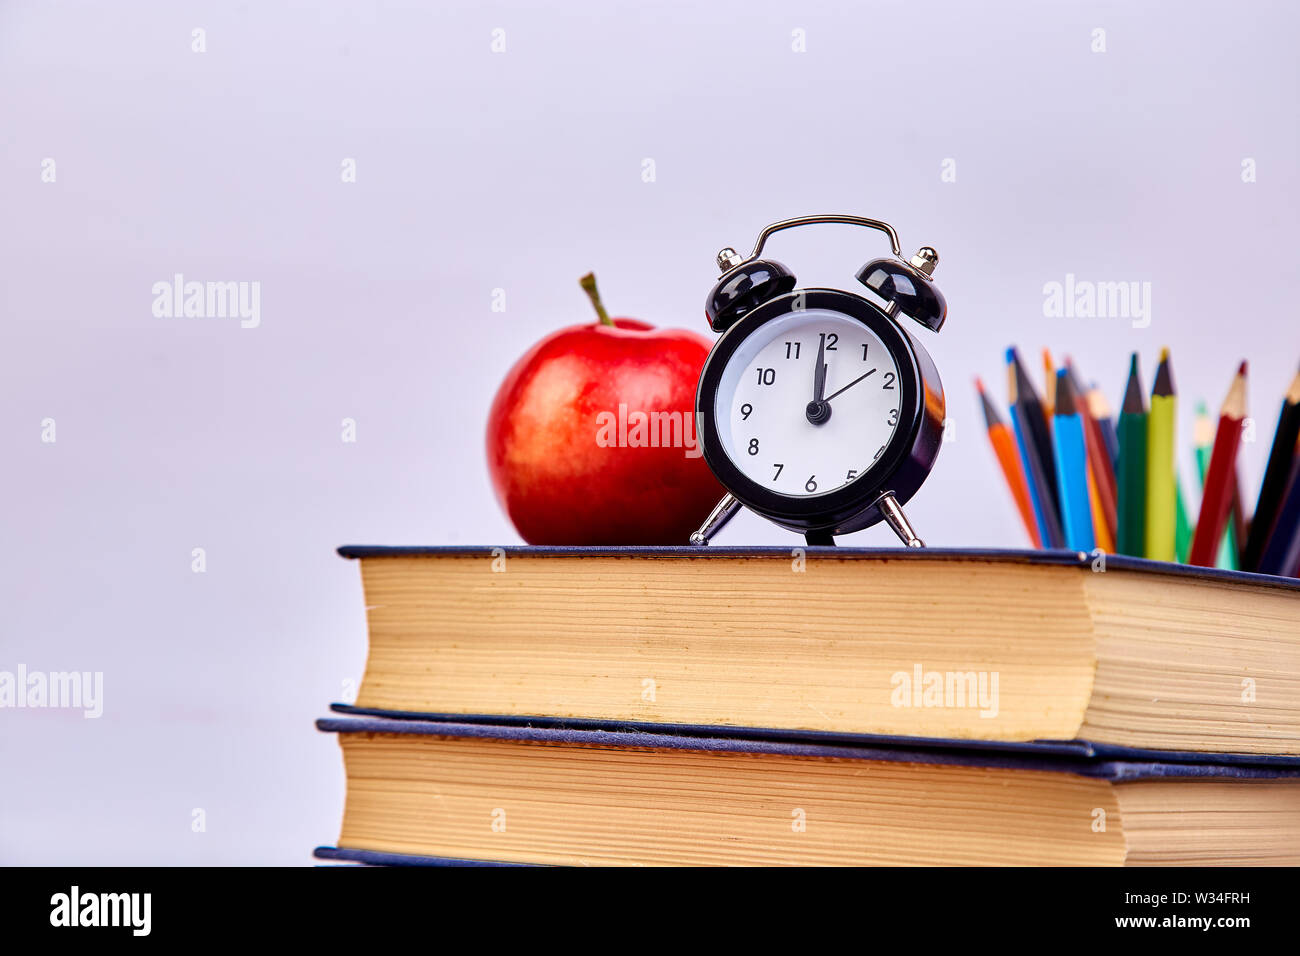 Back to school supplies. Books and red apple on green background. Still life with alarm clock. Copy space. Stock Photo